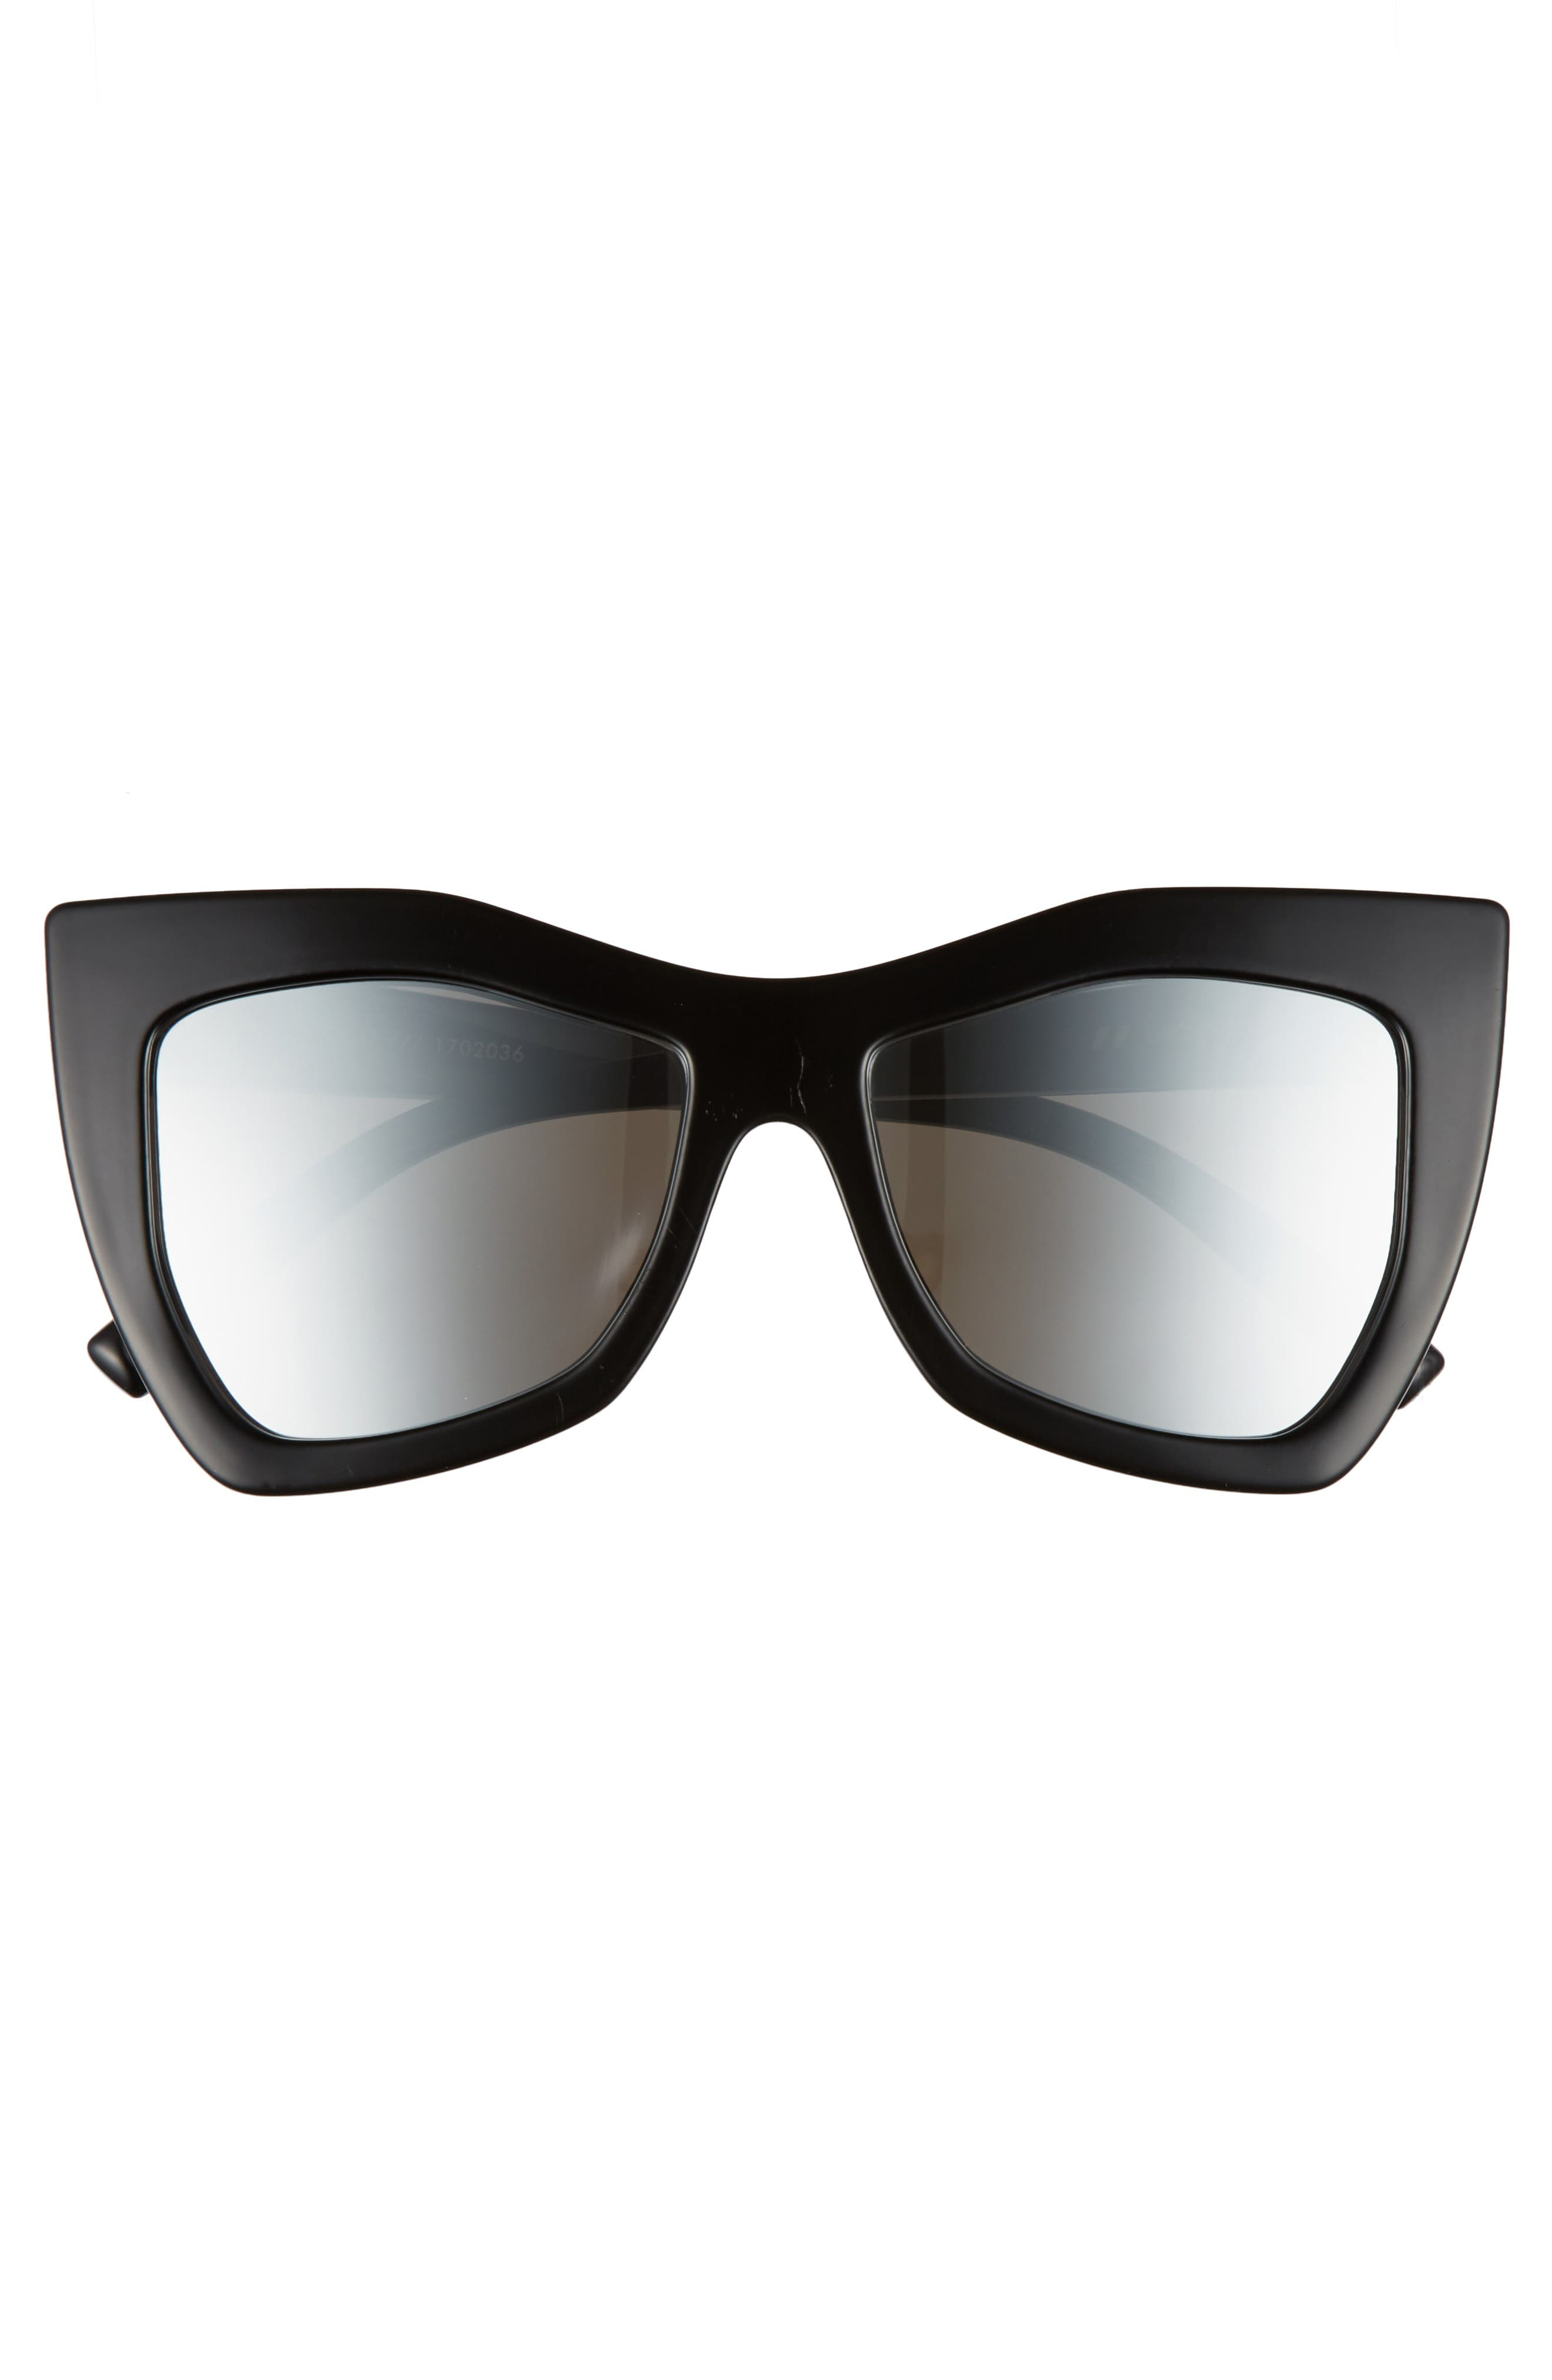 Kick It 54mm Sunglasses,                             Alternate thumbnail 3, color,                             001